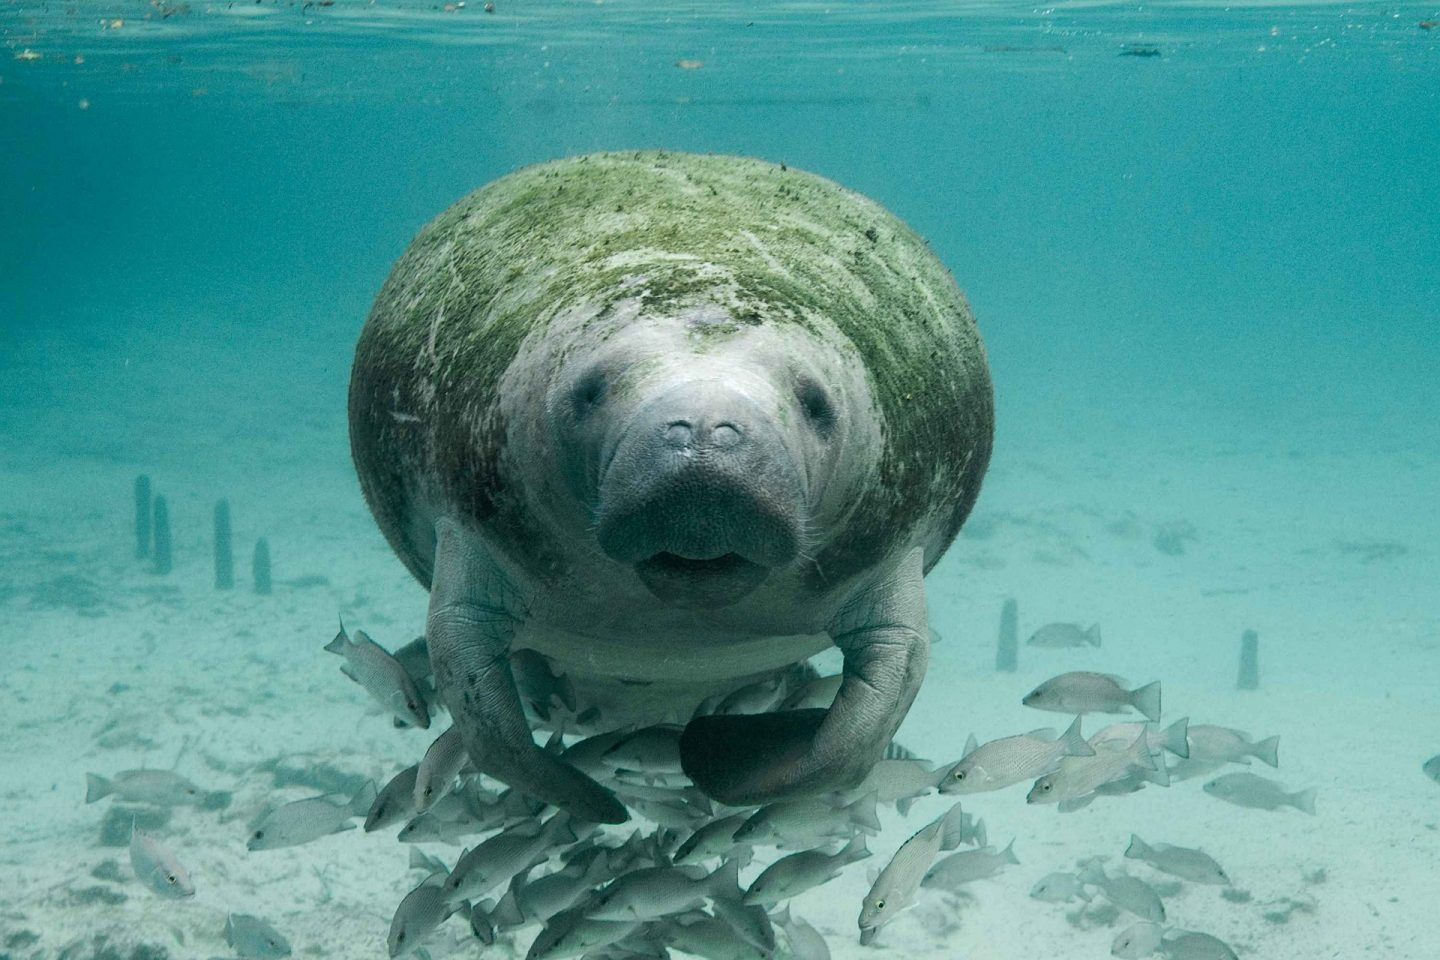 A dugong floating under the water